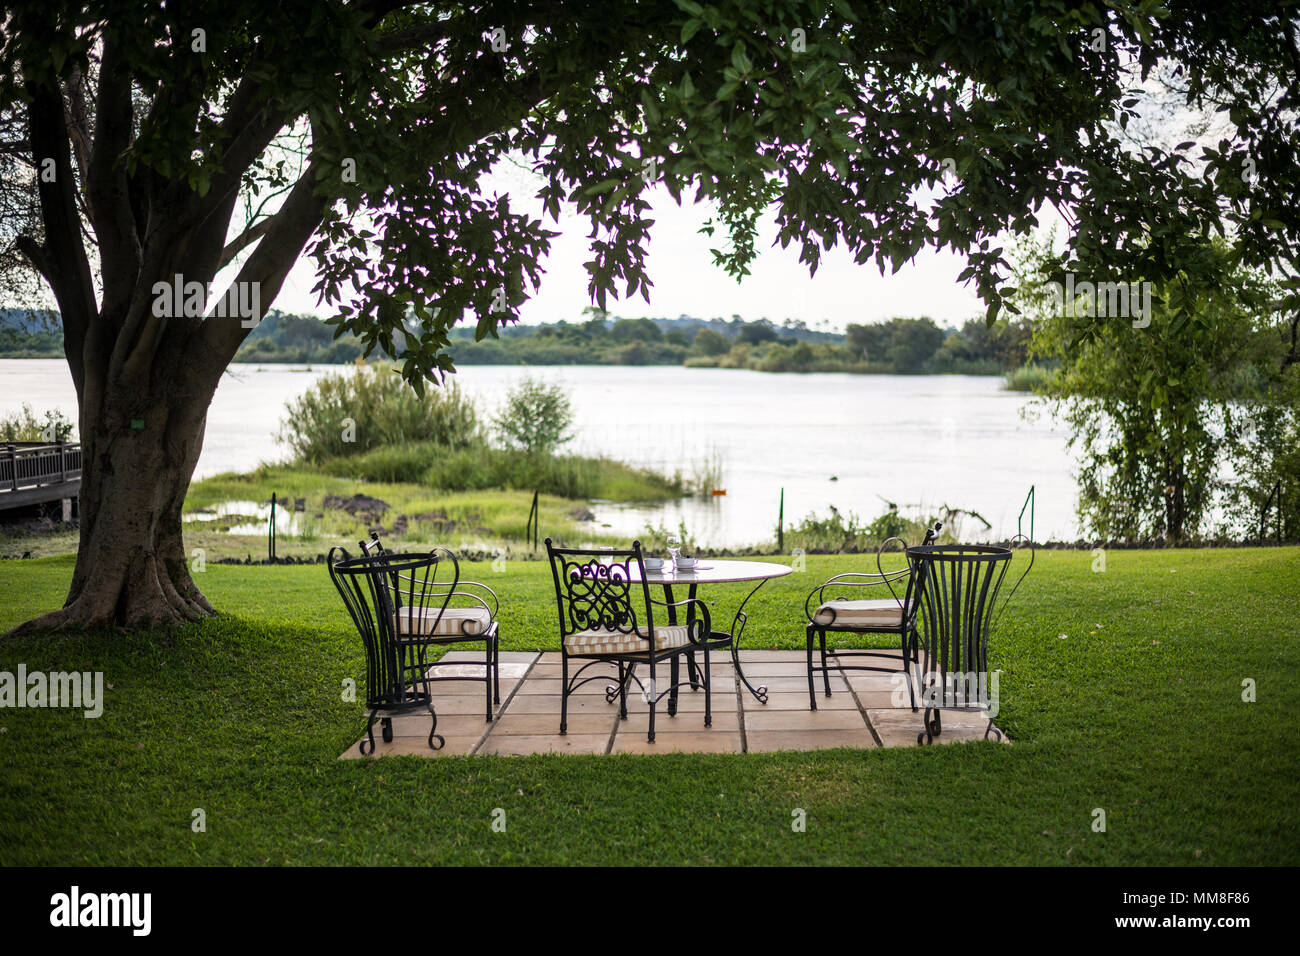 A table setup overlooks picturesque view of the Zambezi River at the Royal Livingston Hotel in Livingstone, Zambia - Stock Image